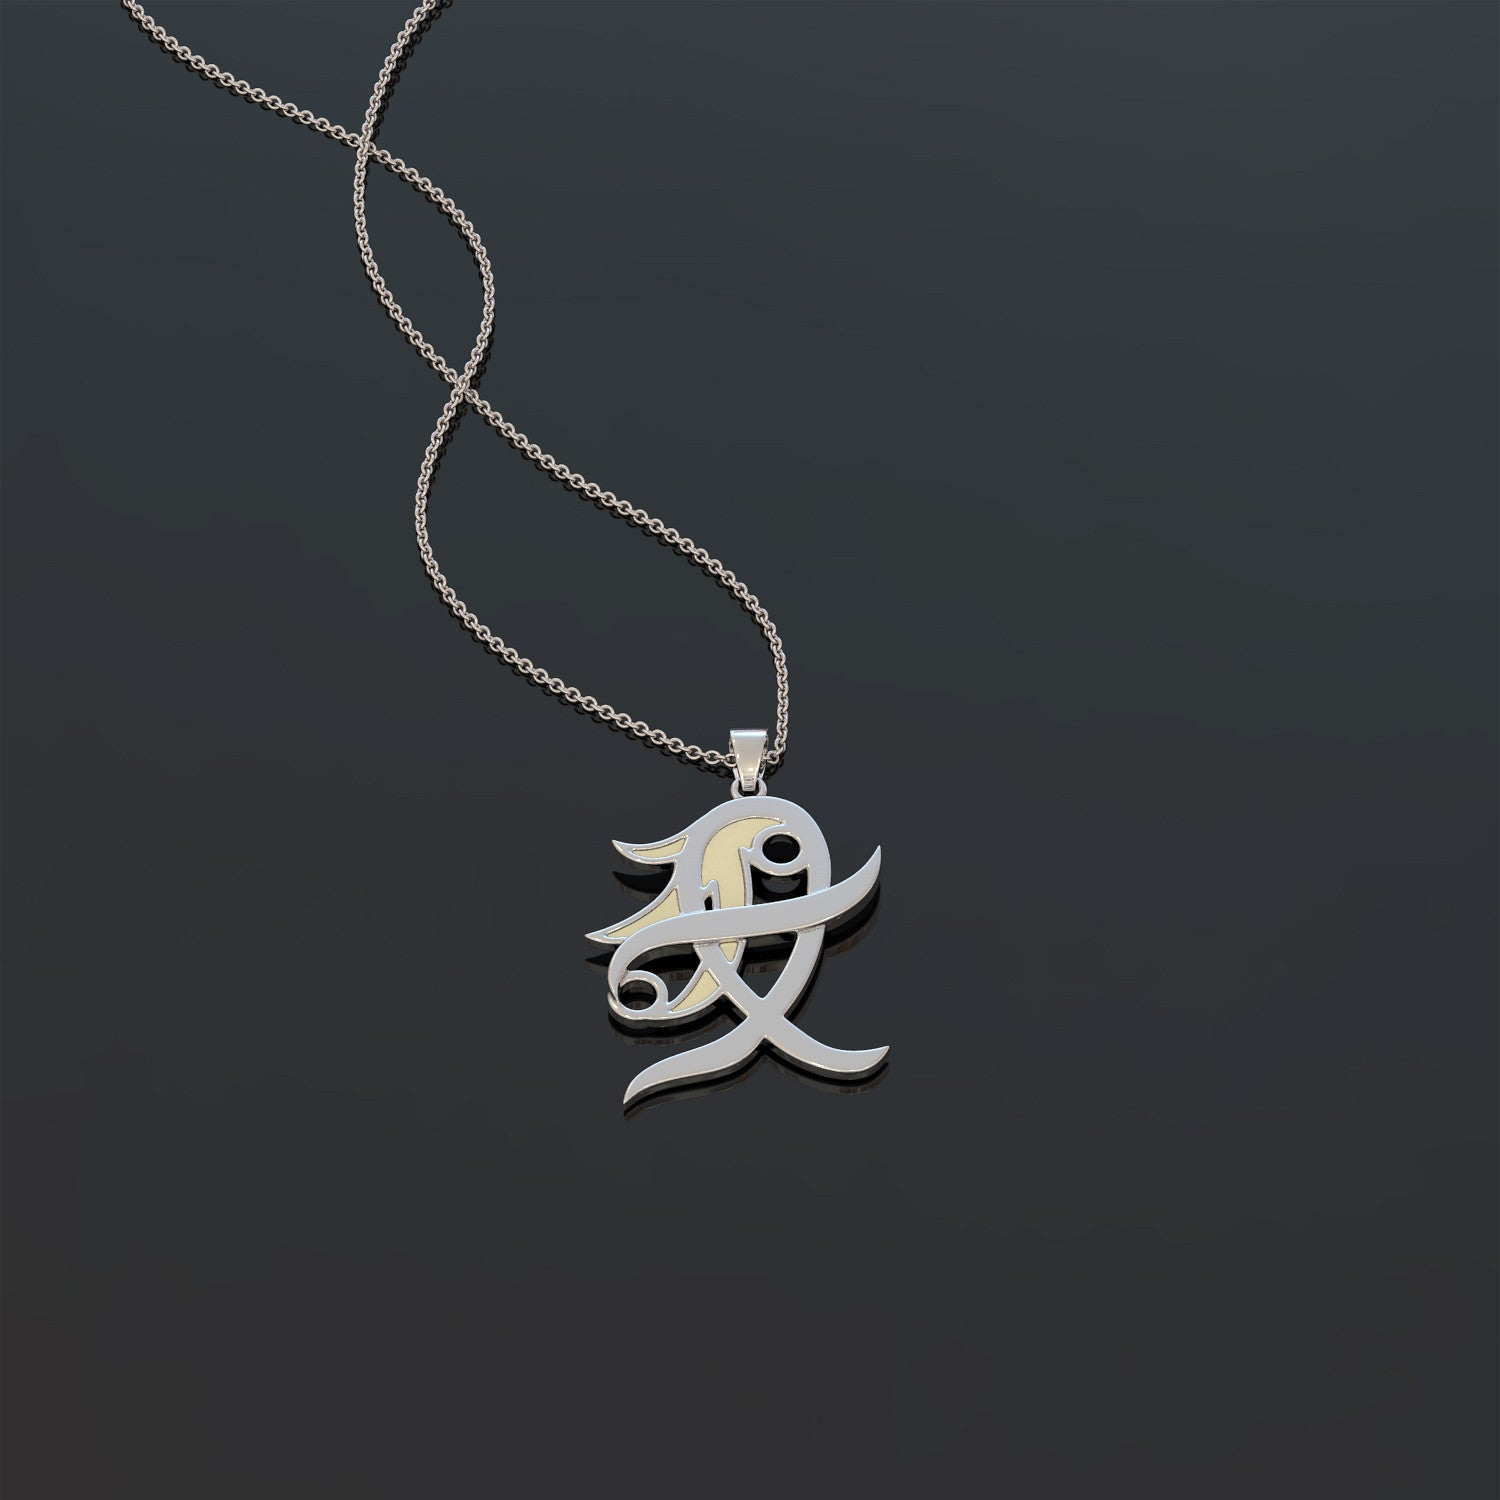 virgo necklace constellation zodiac fullxfull listing il zoom